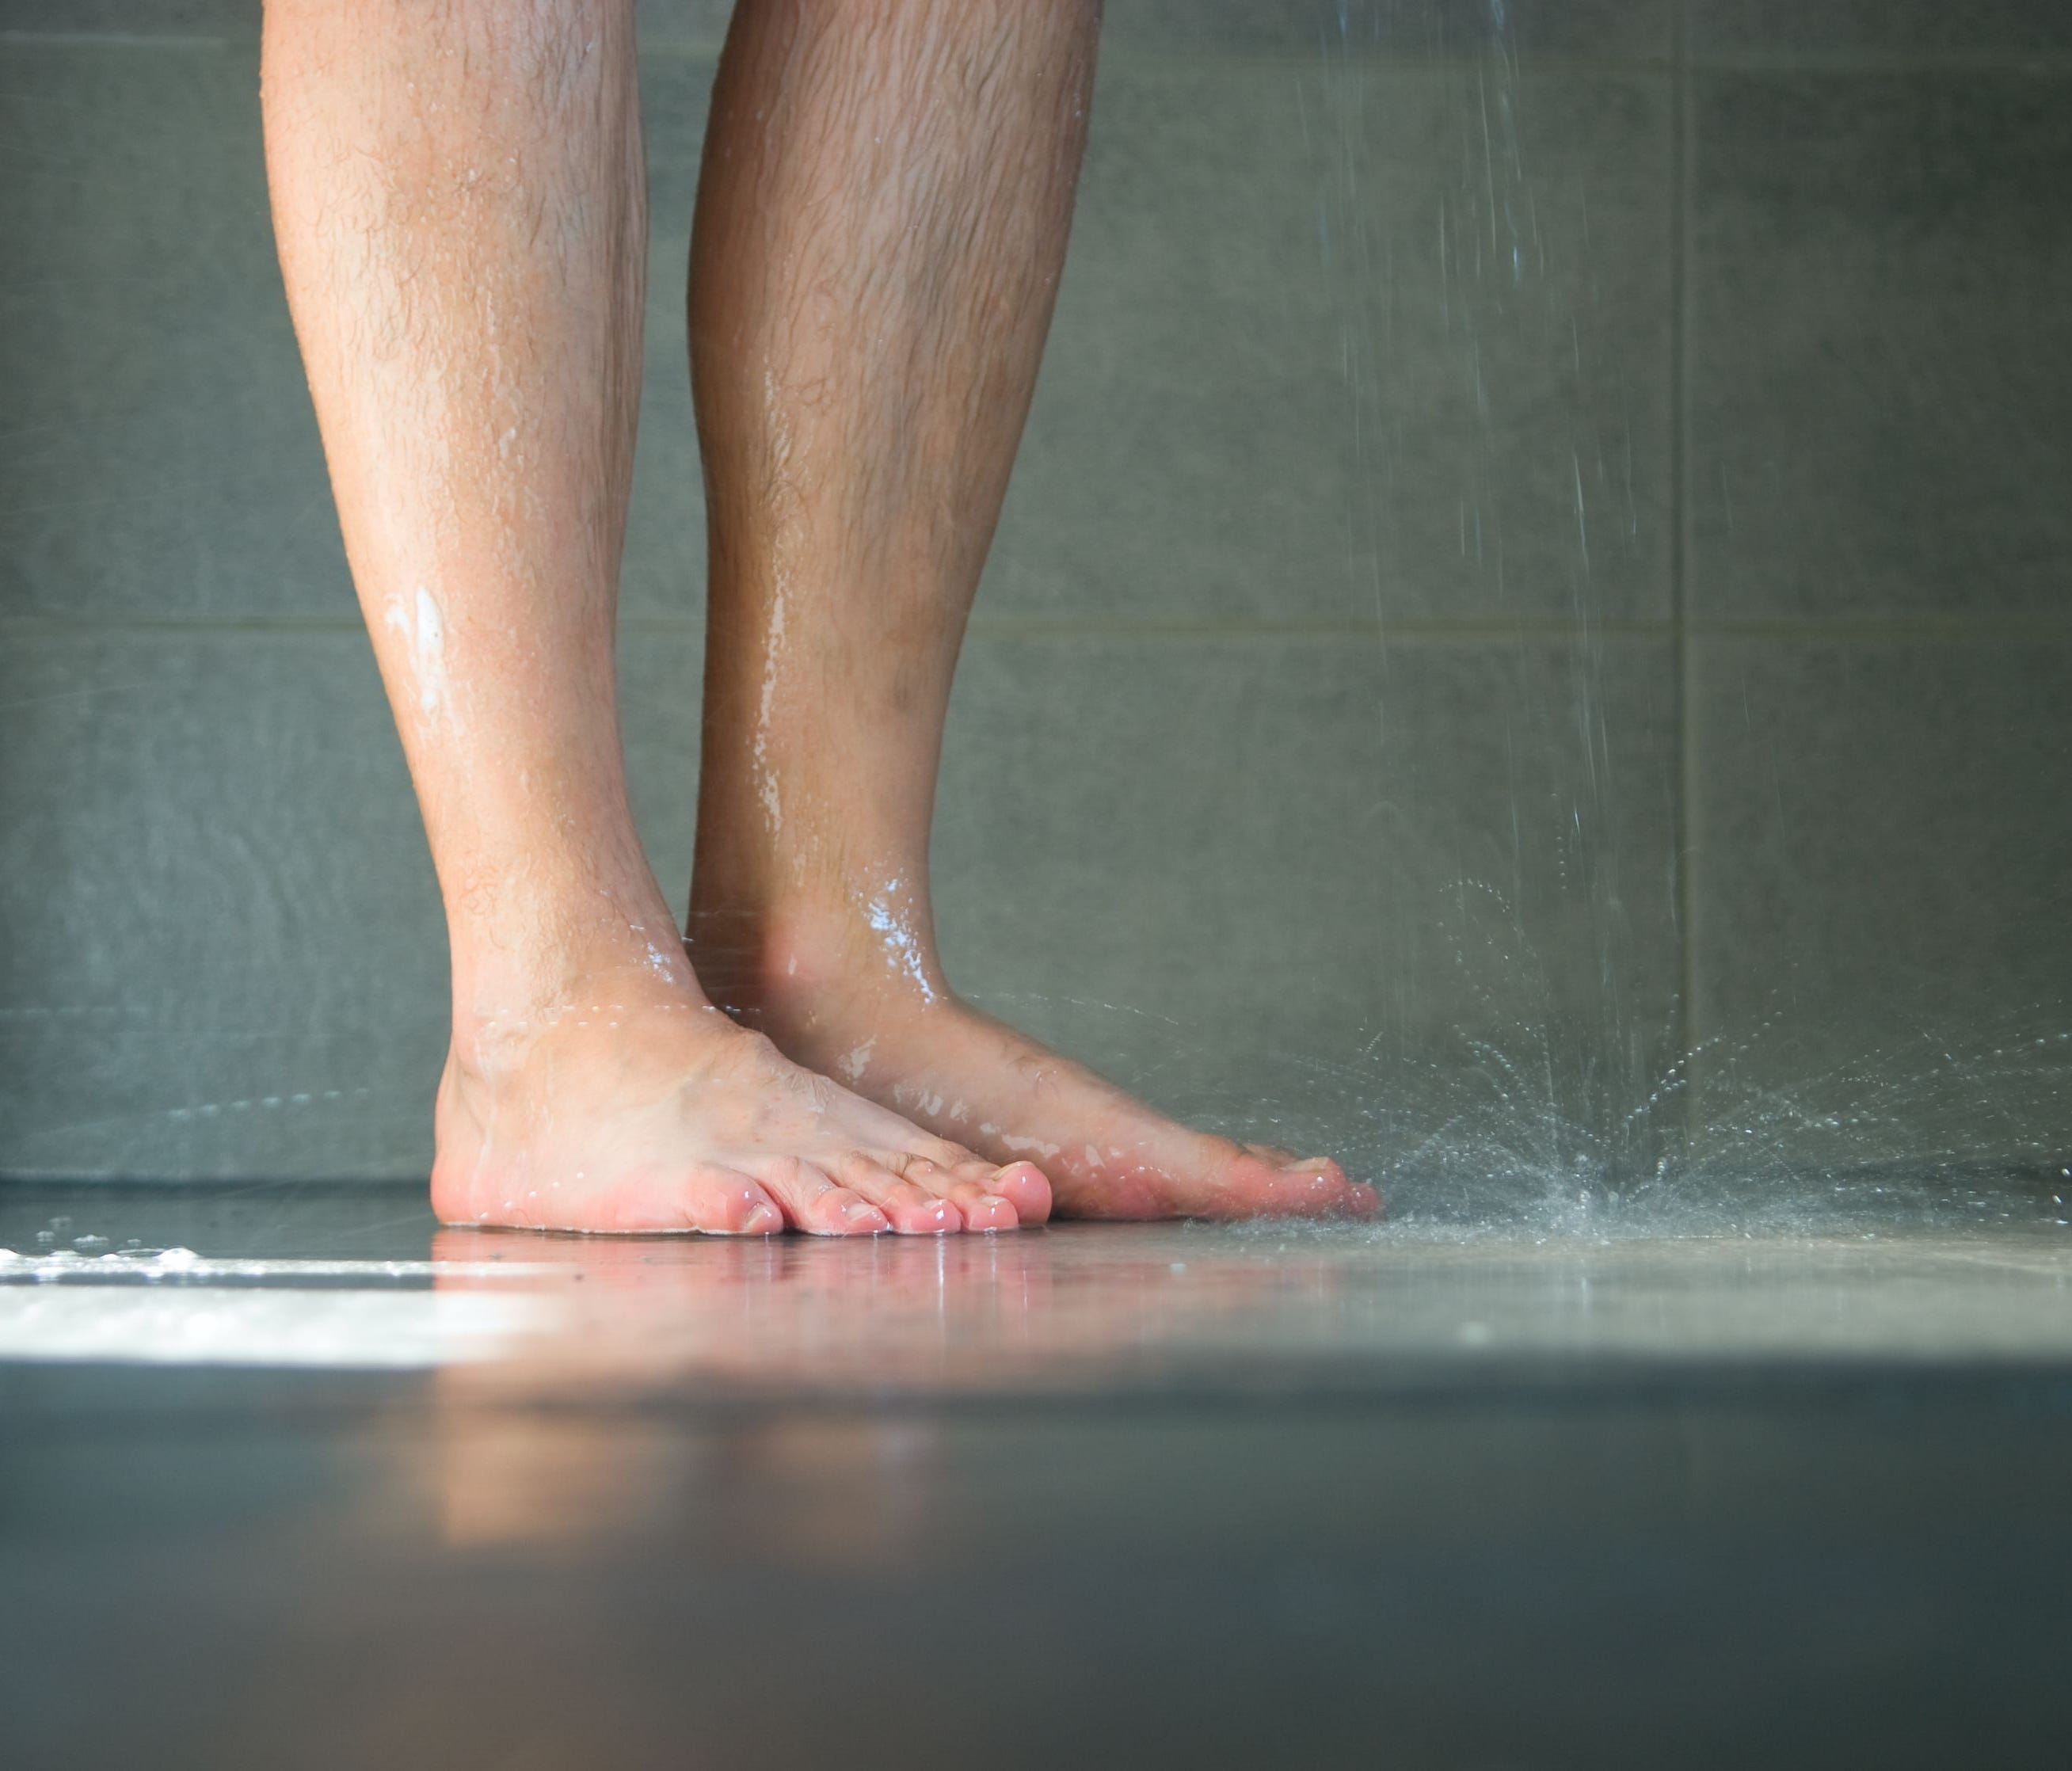 If you didn't shower for an entire year, you'd likely smell.